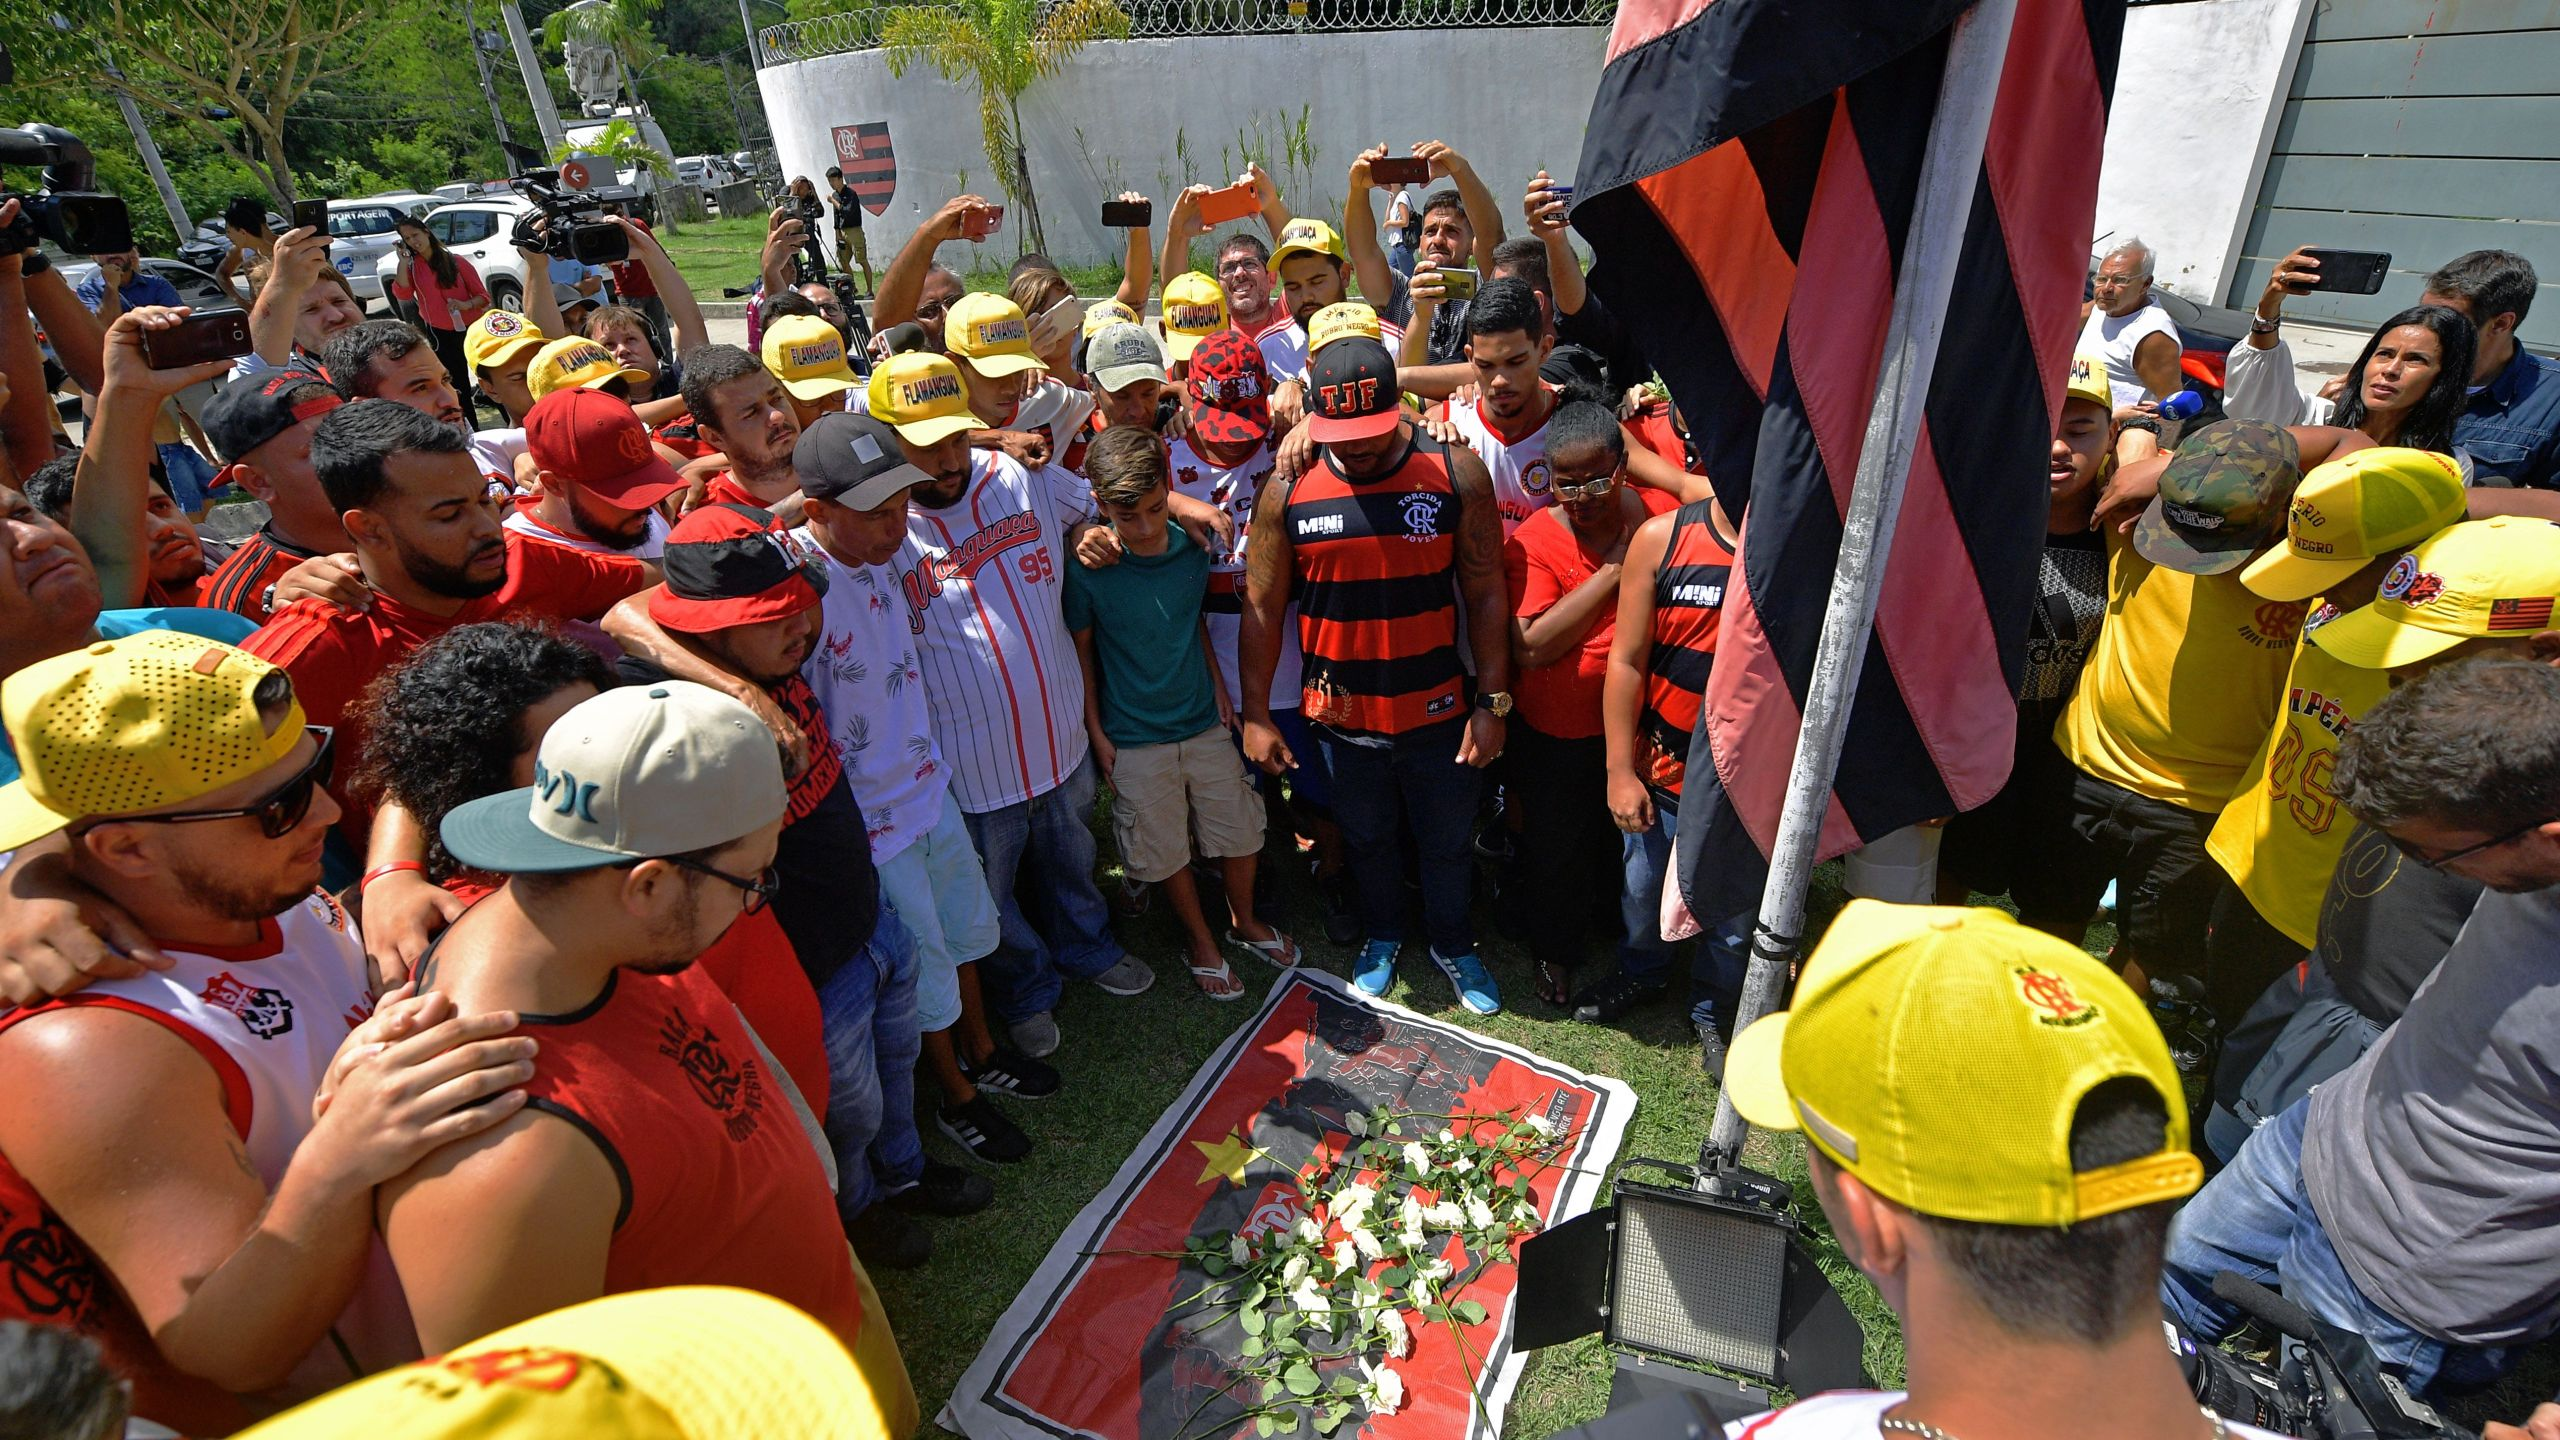 Brazilian football club Flamengo fans gather to lay flowers at the entrance of the club's training center after a deadly fire in Rio de Janeiro, Brazil, on Feb. 8, 2019. (Credit: Carl De Souza / AFP / Getty Images)